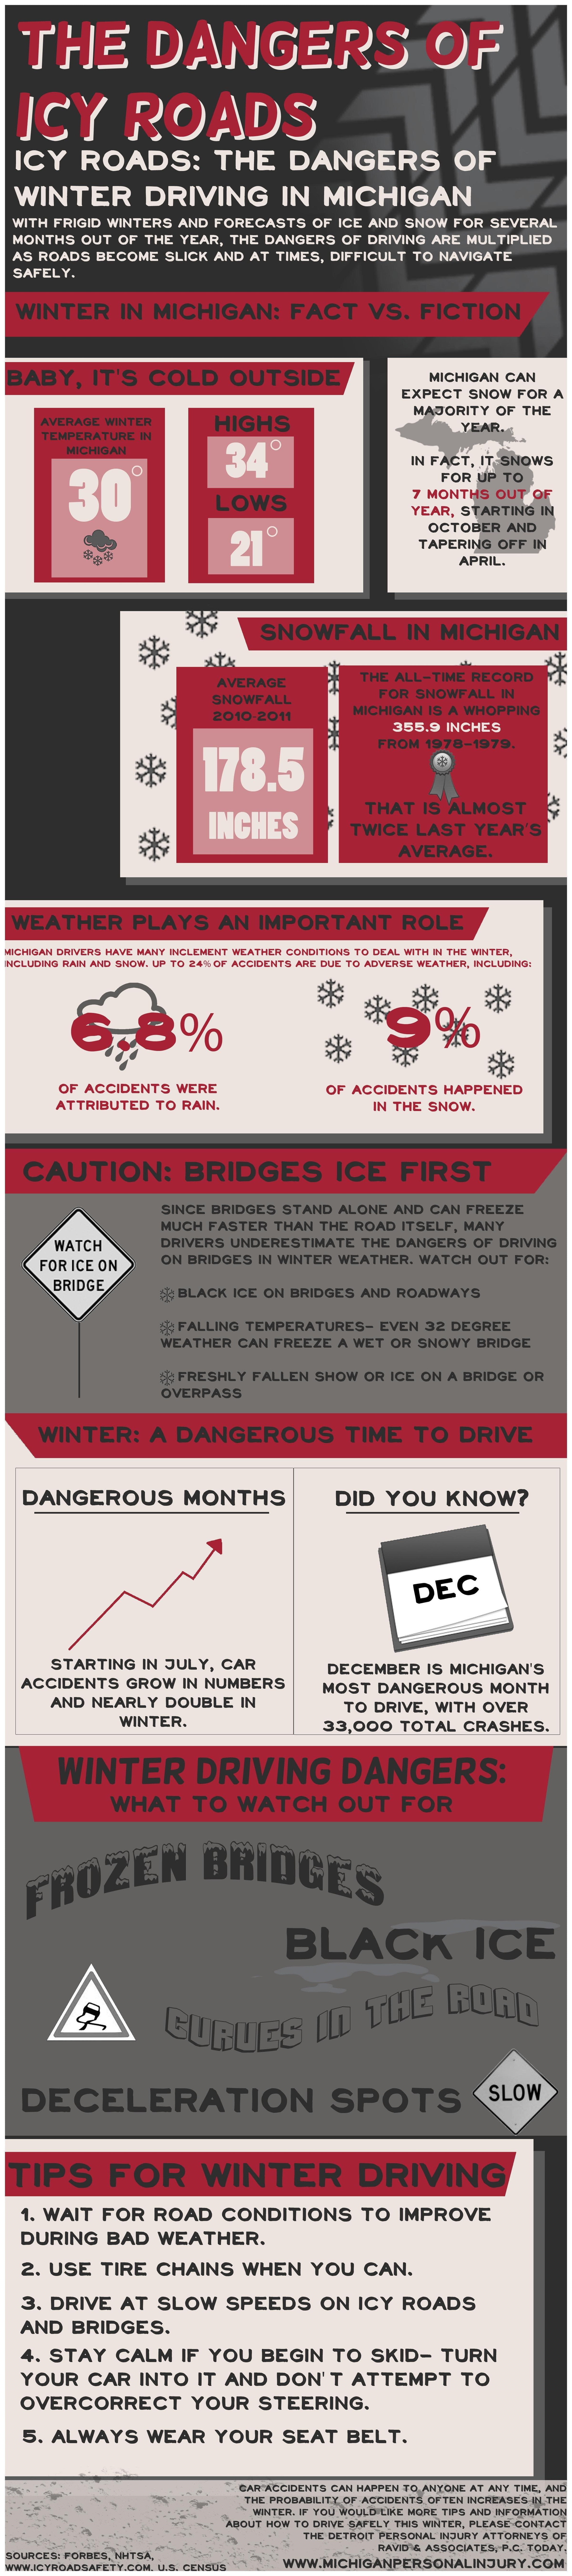 Dangers of Icy Roads